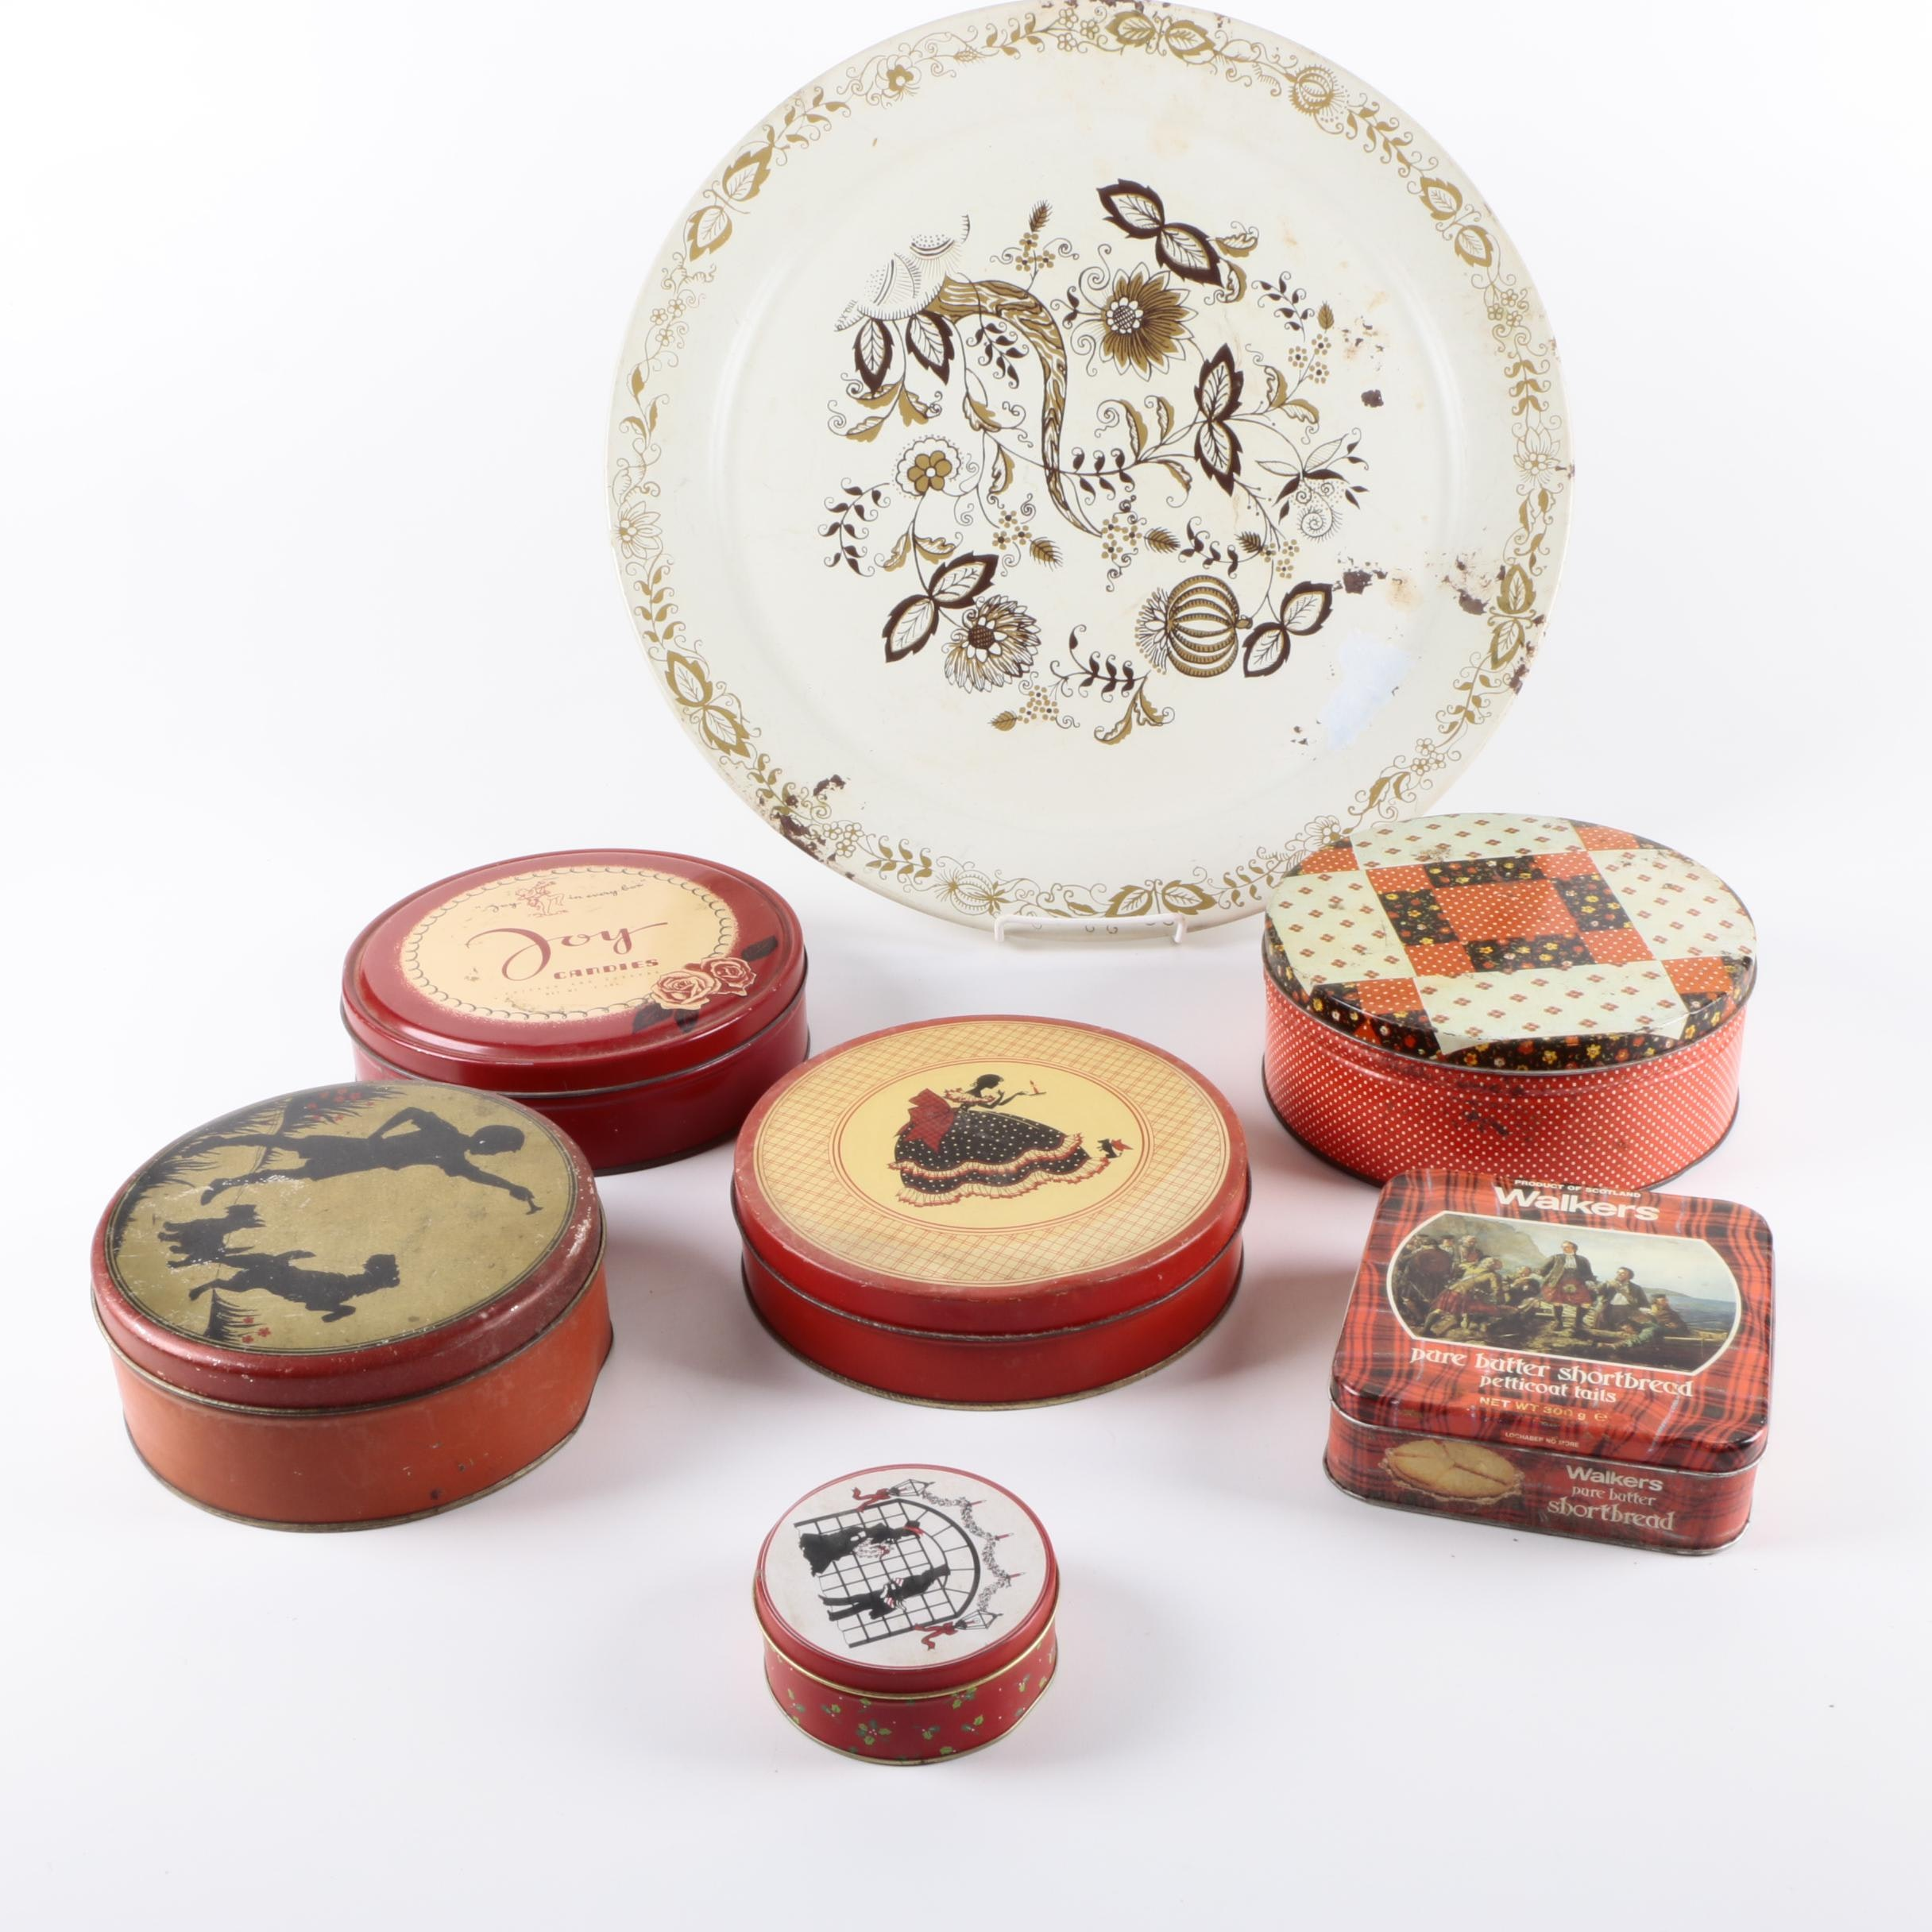 Vintage Cookie Tins and Social Supper Tray